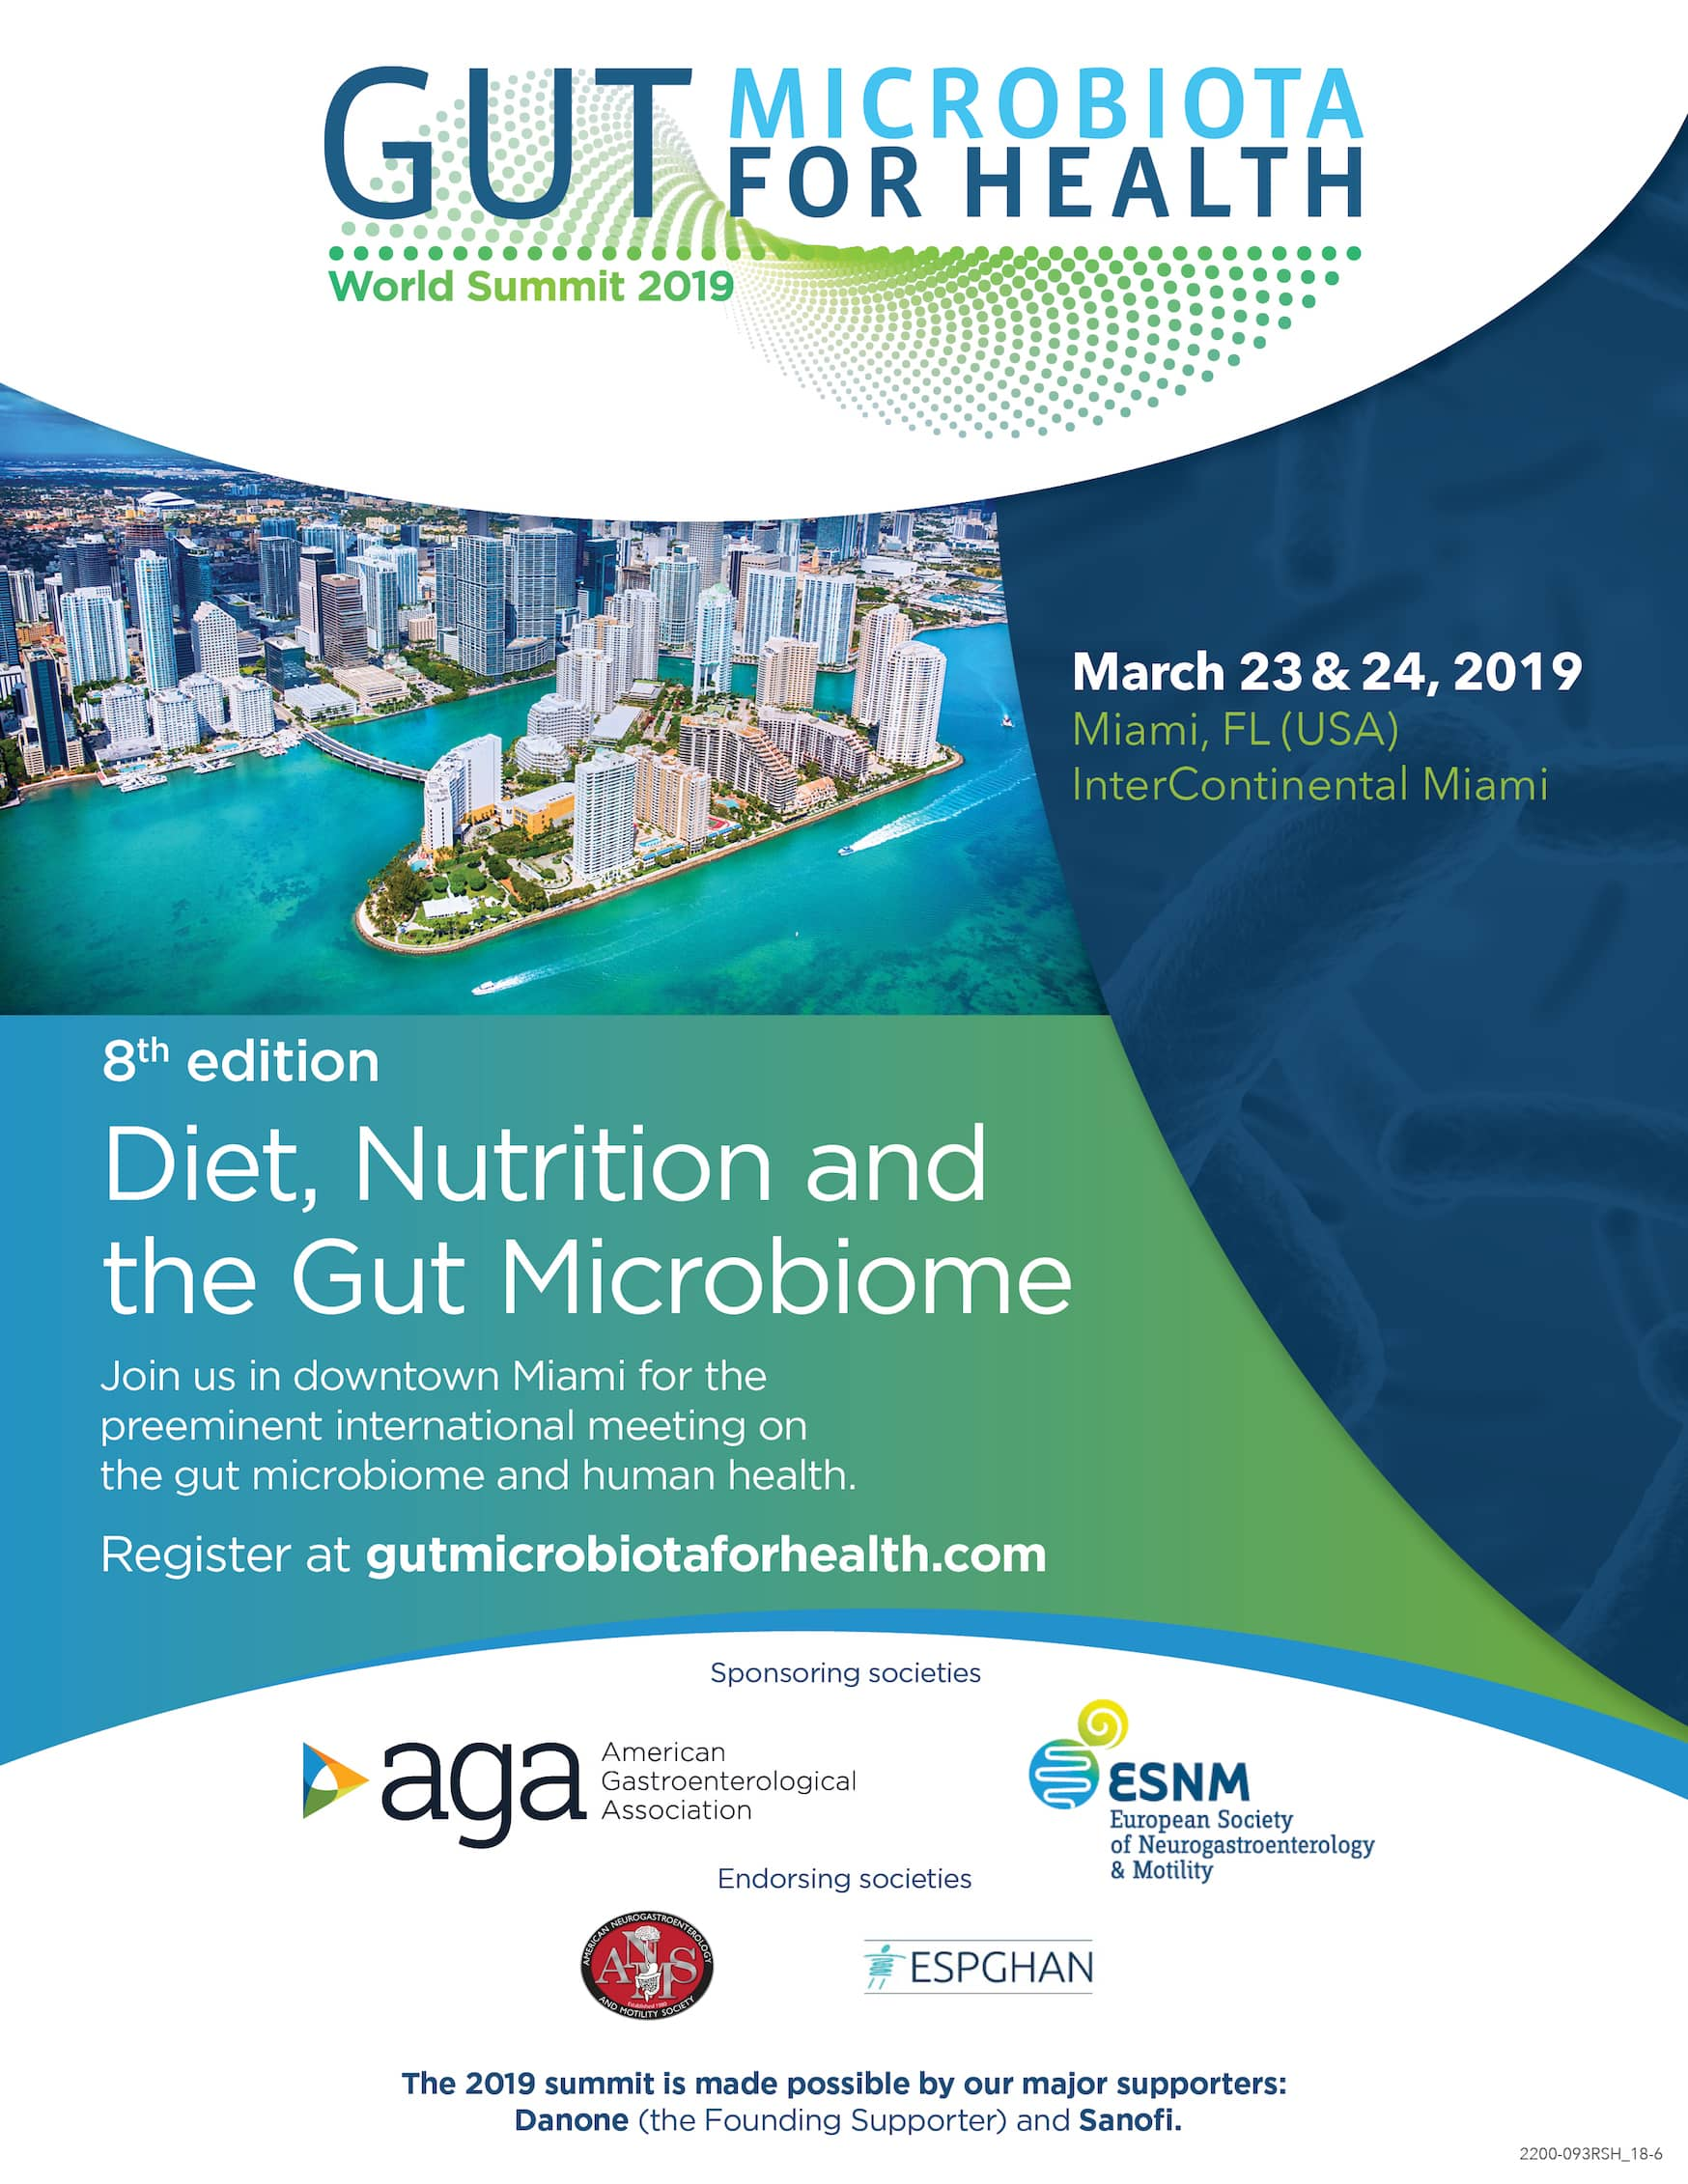 Gut Microbiota for Health World Summit 2019